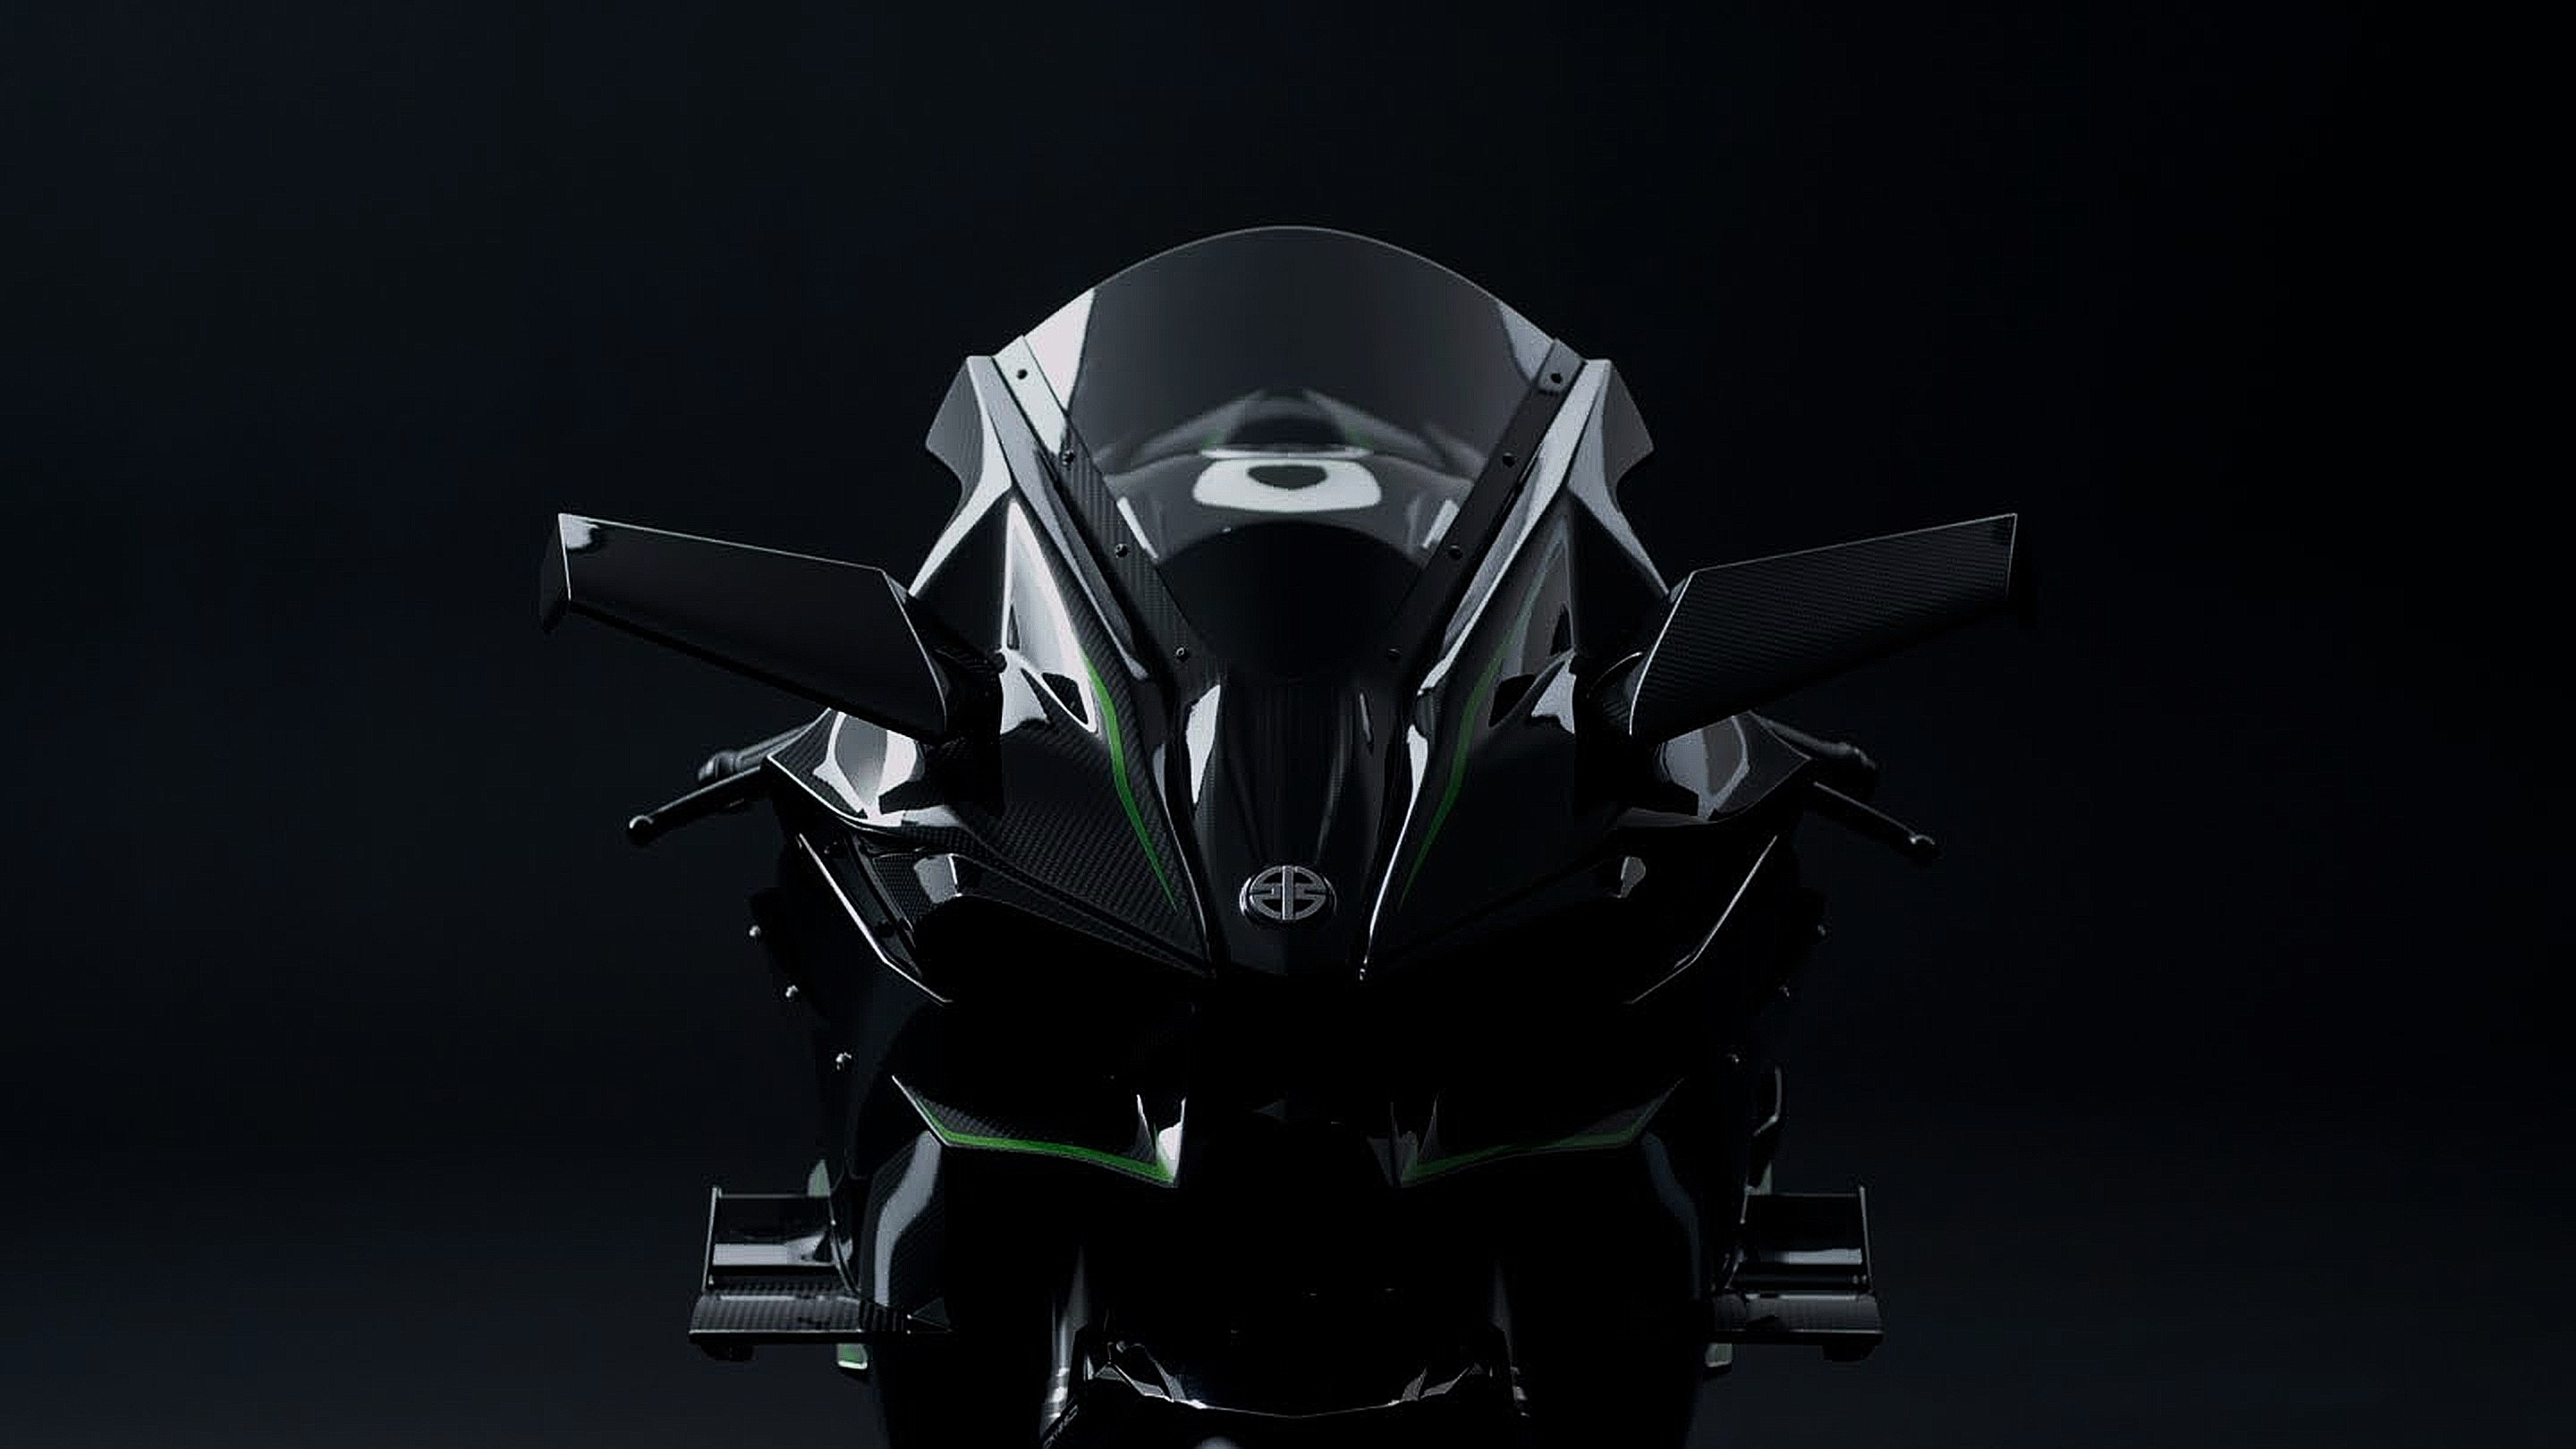 2880x1620 H2R HD Wallpapers free download at hdwalle.com, Ninja H2R Wallpapers